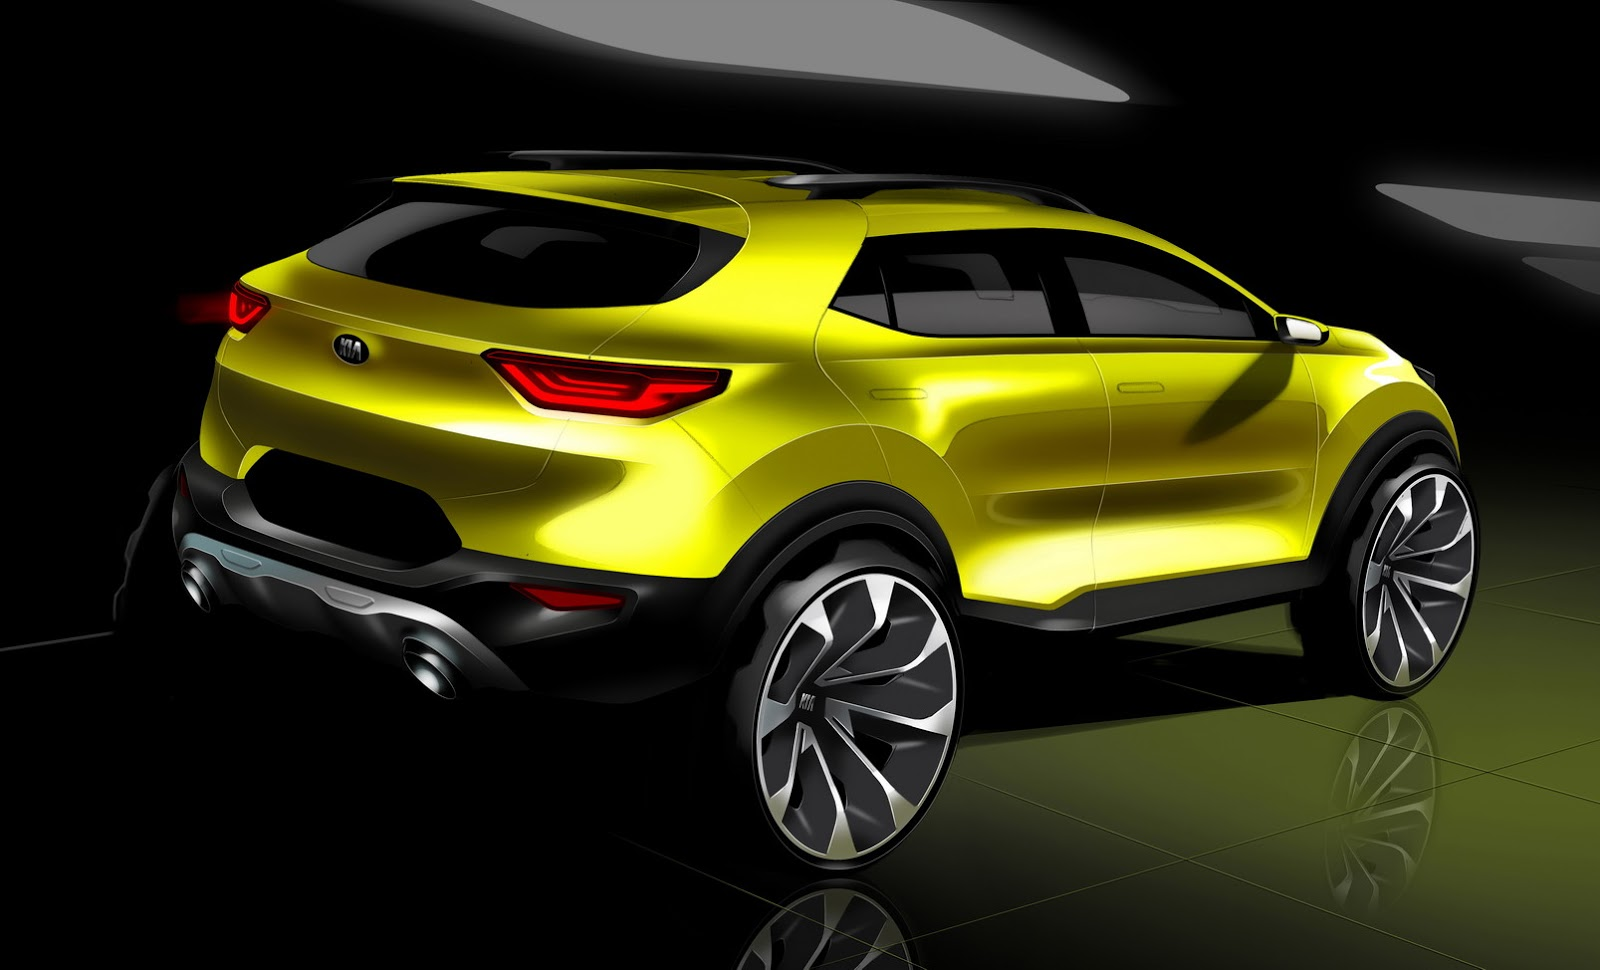 kia shows new stonic small crossover in official sketches. Black Bedroom Furniture Sets. Home Design Ideas